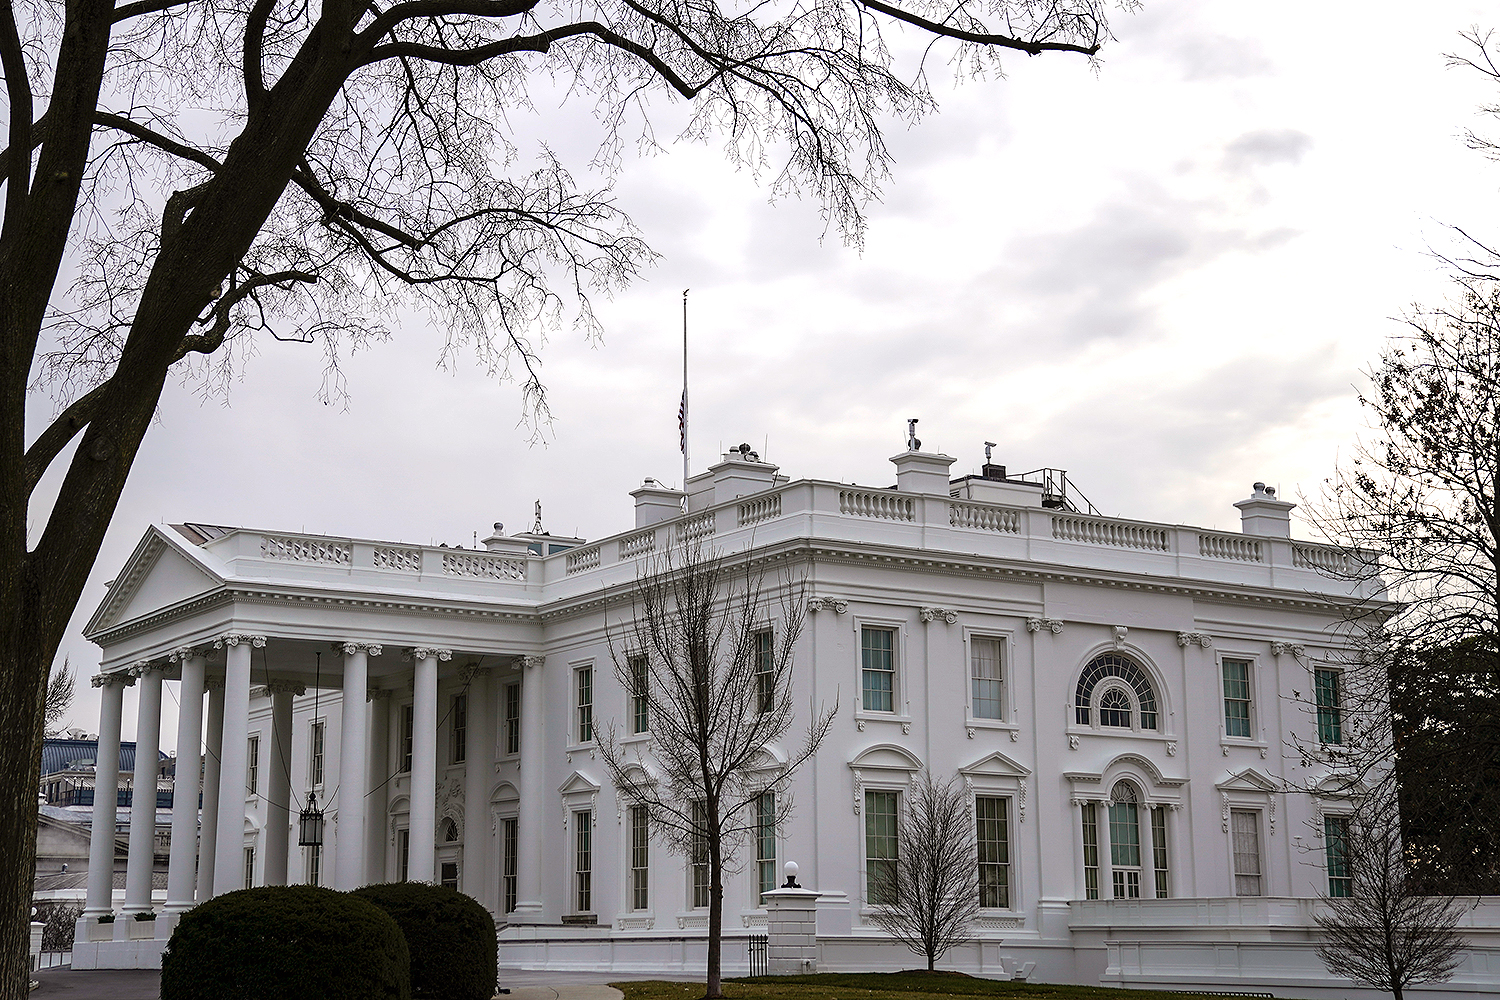 The American flag flies at half staff over the White House